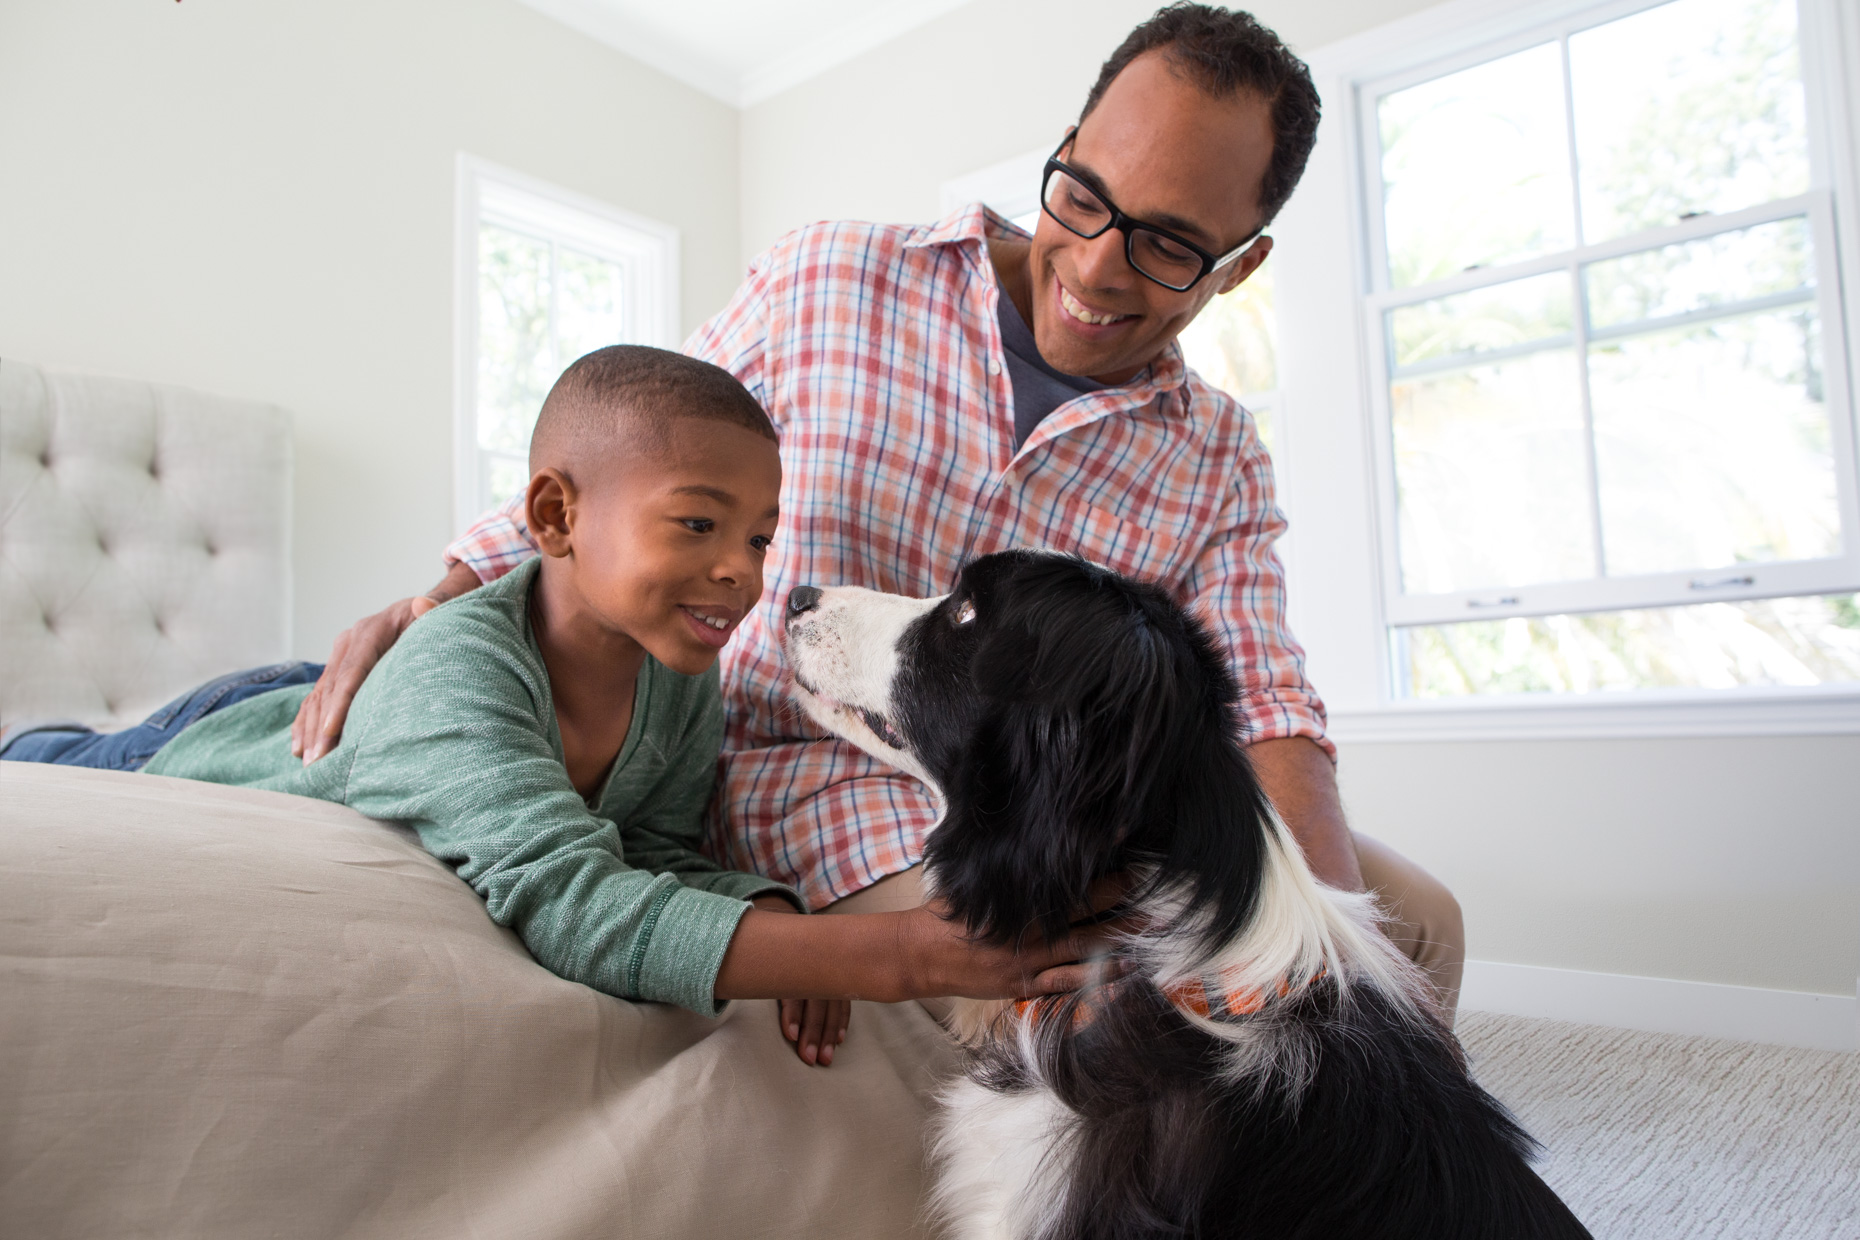 People and Pet Photography | Father and Son with Dog by Mark Rogers